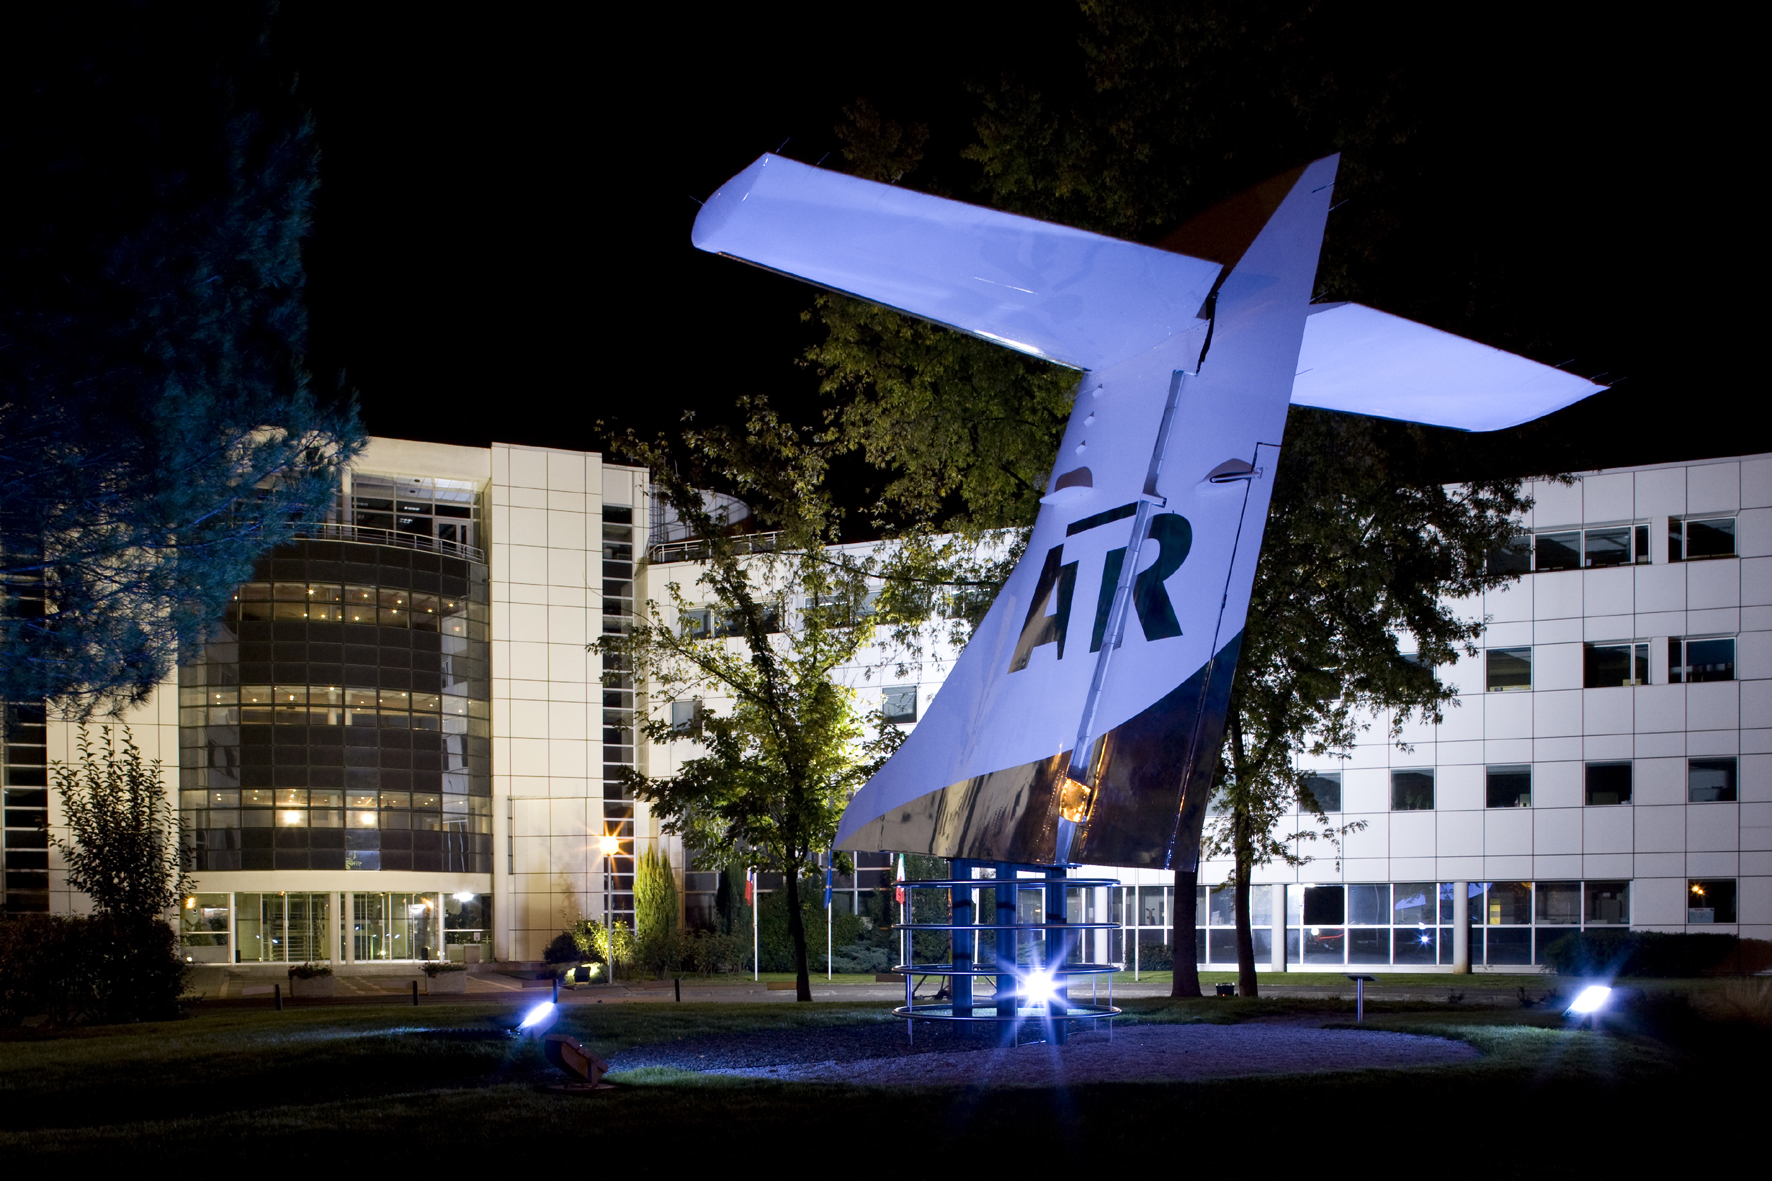 ATR-Headquarters-2